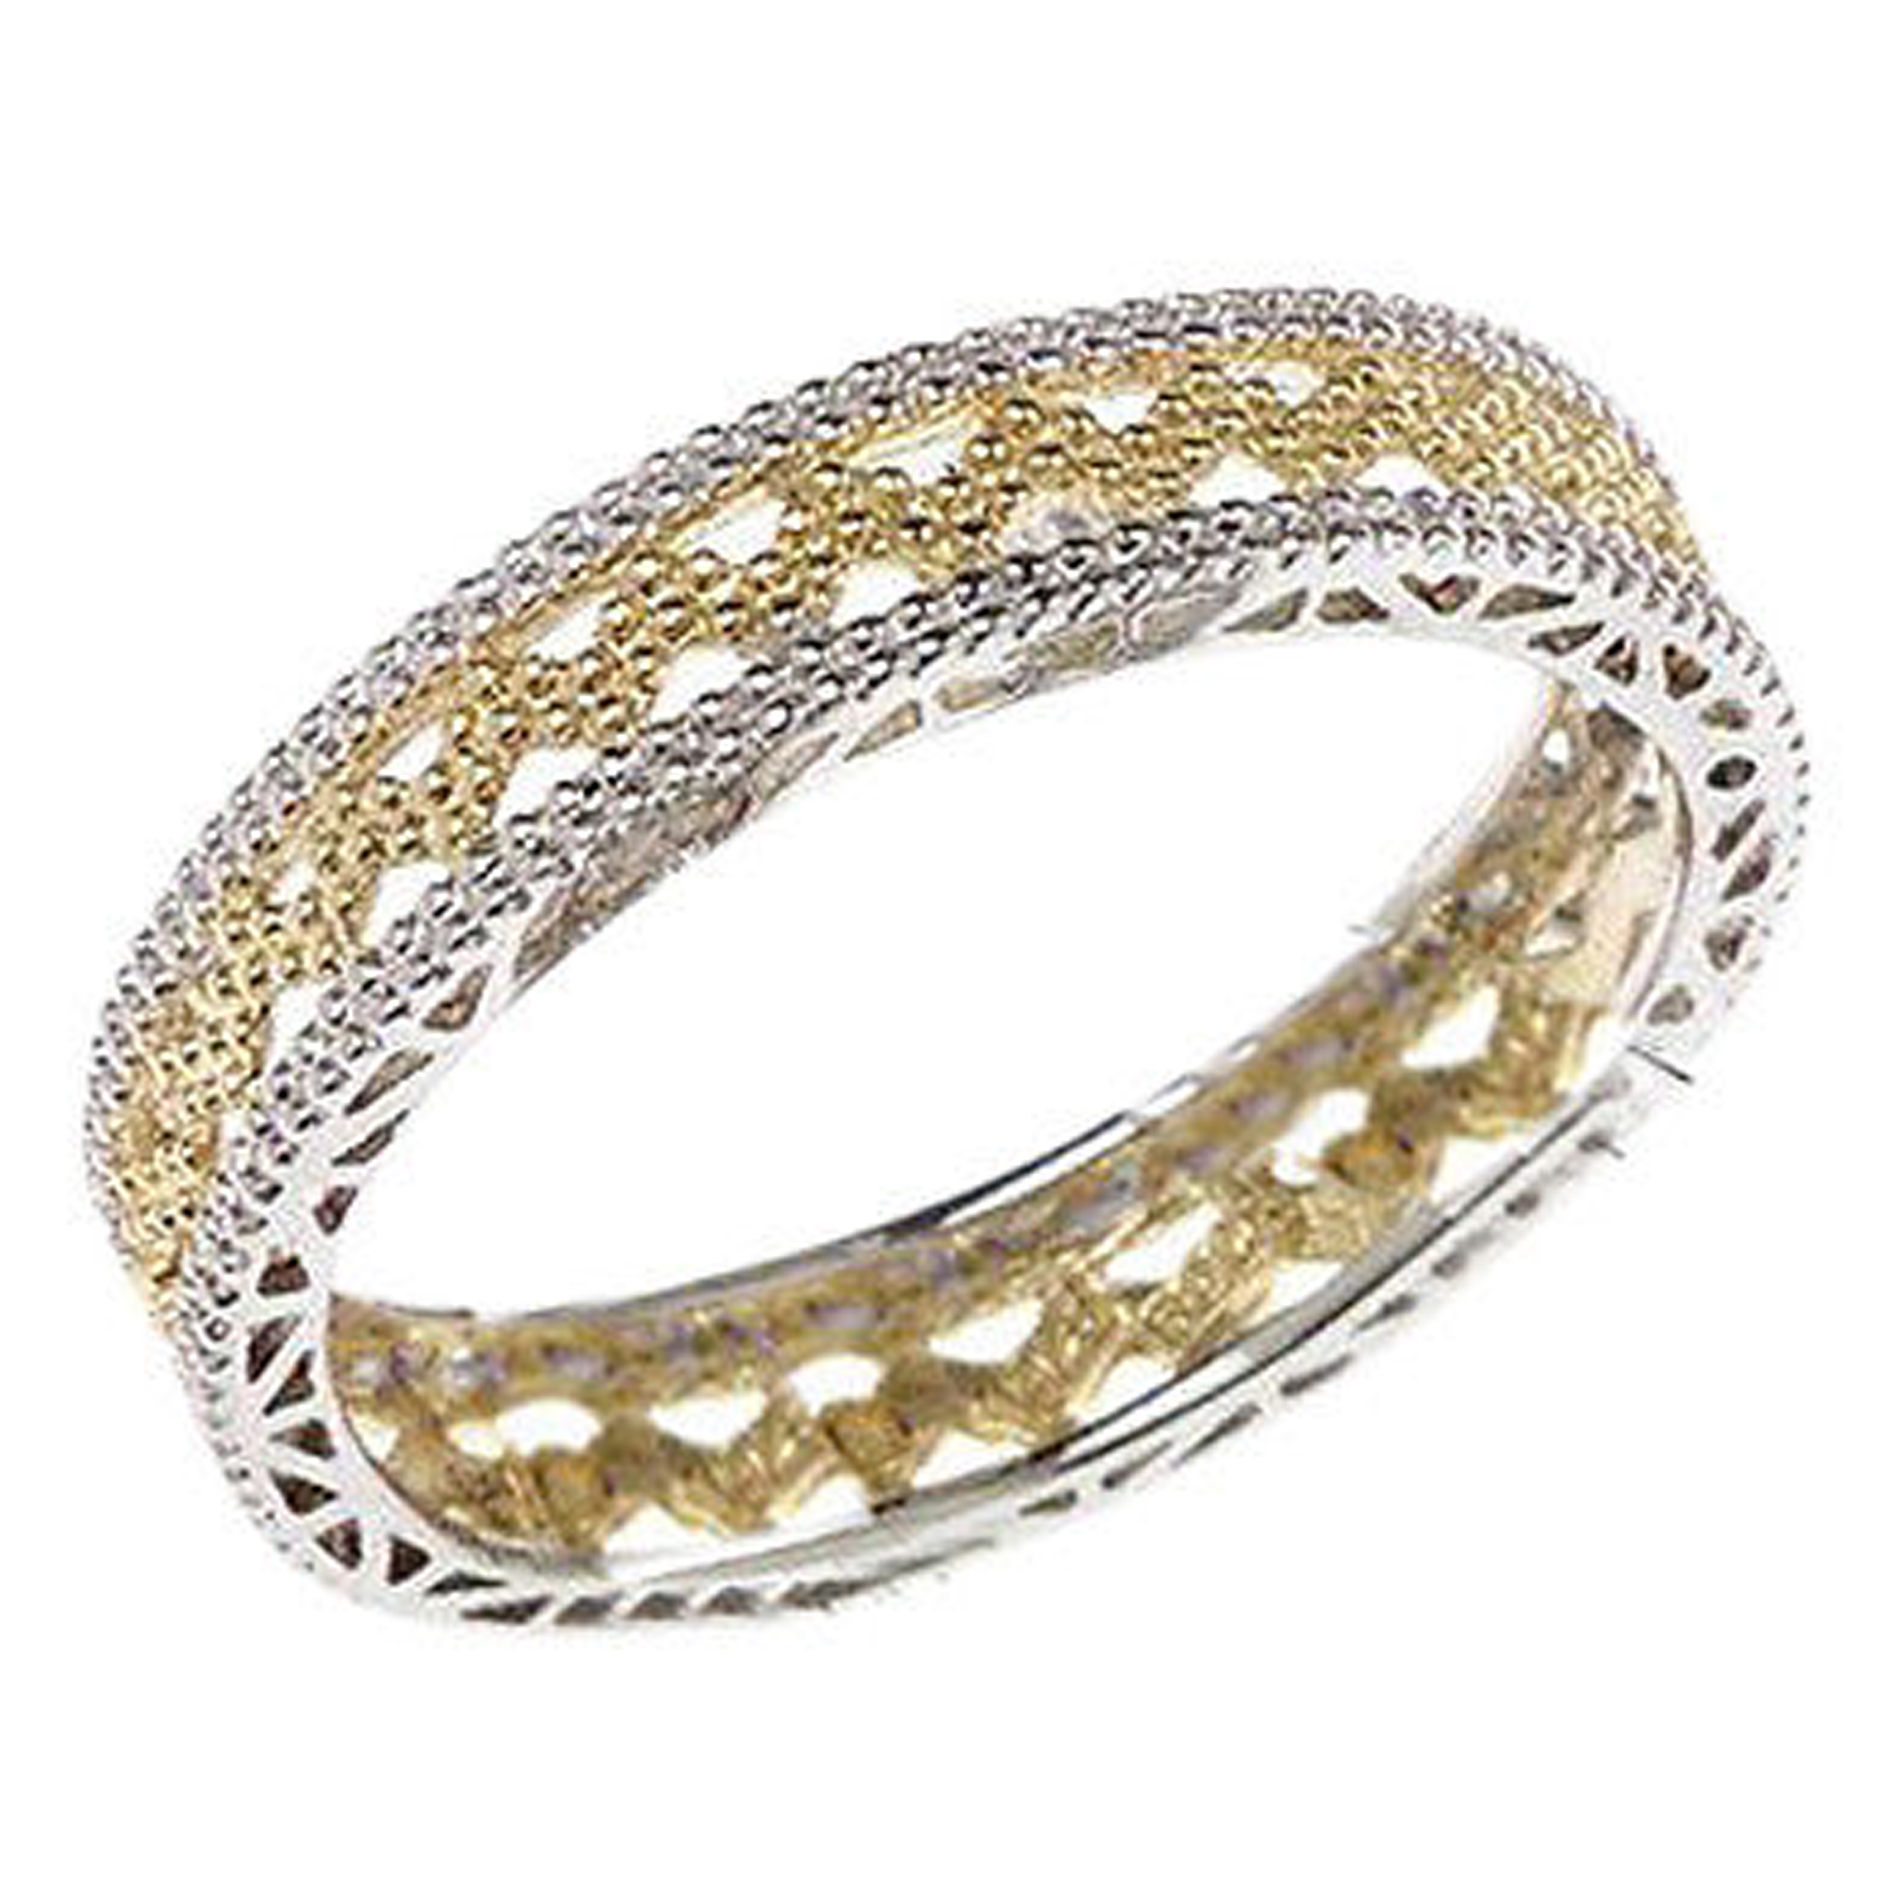 qvc two tone sterling silver eternity band ring 6 ebay